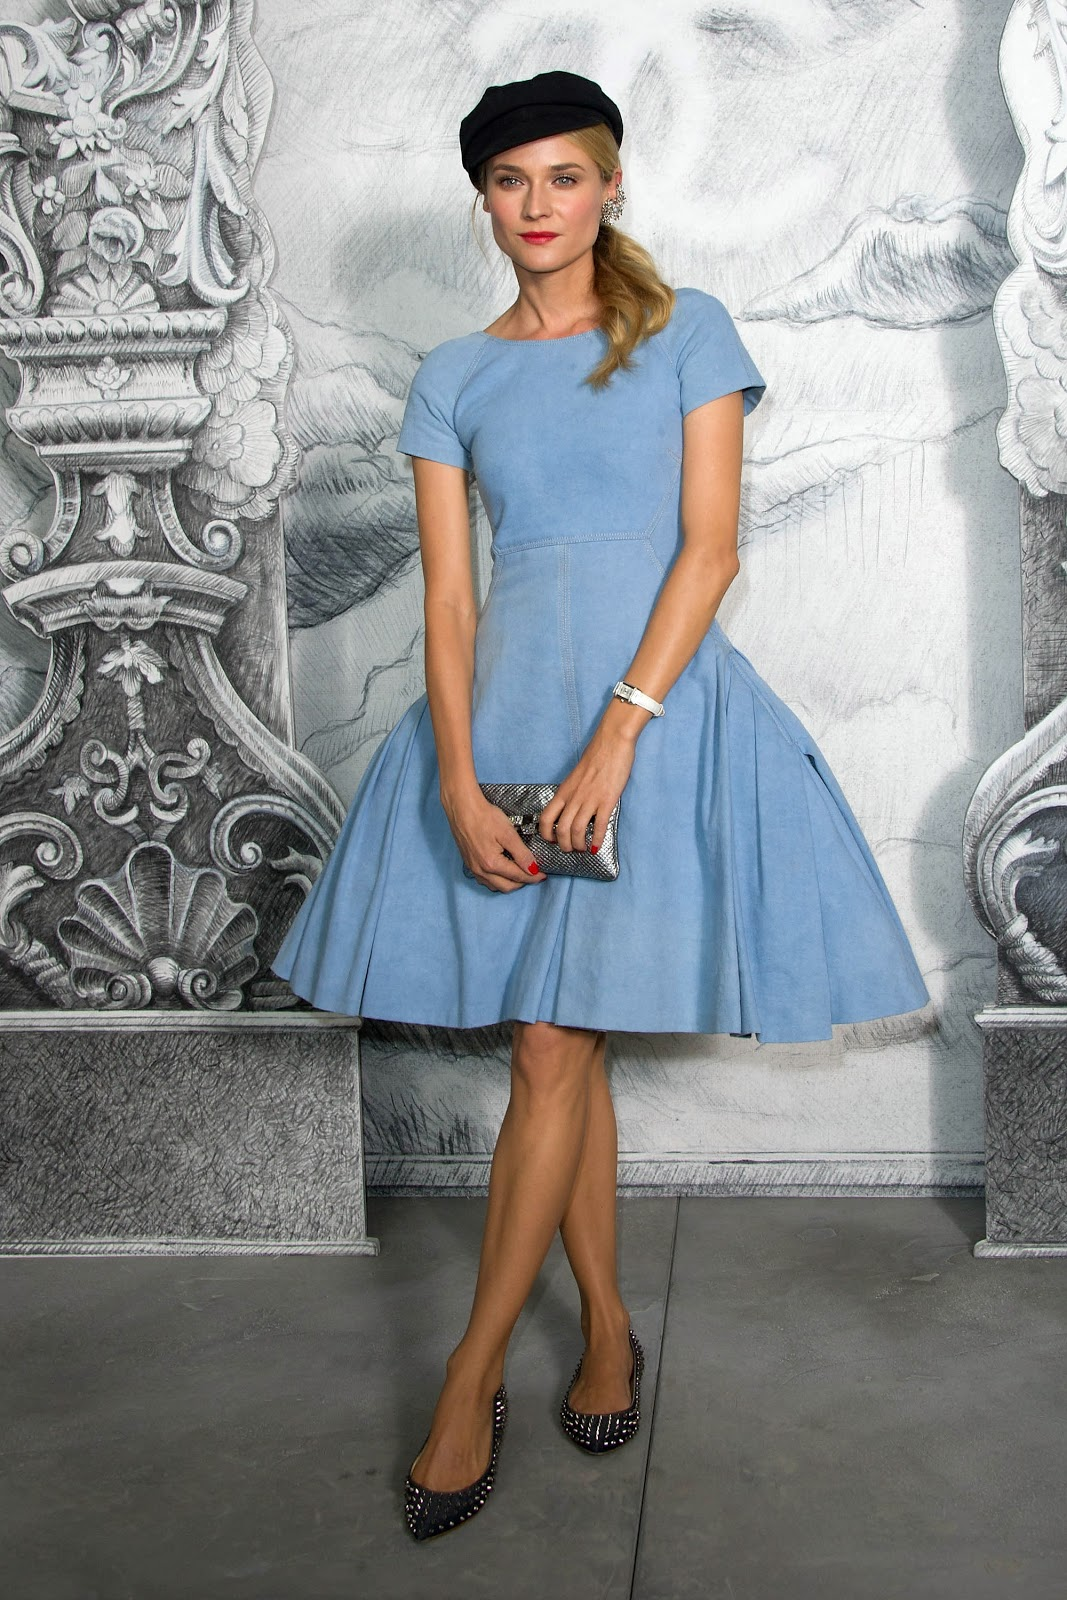 http://4.bp.blogspot.com/-Awmspt6OifE/UK94dL0txPI/AAAAAAAABtY/YtzVbMm1J2I/s1600/Diane-Kruger-Chanel-Denim-Dress.jpg